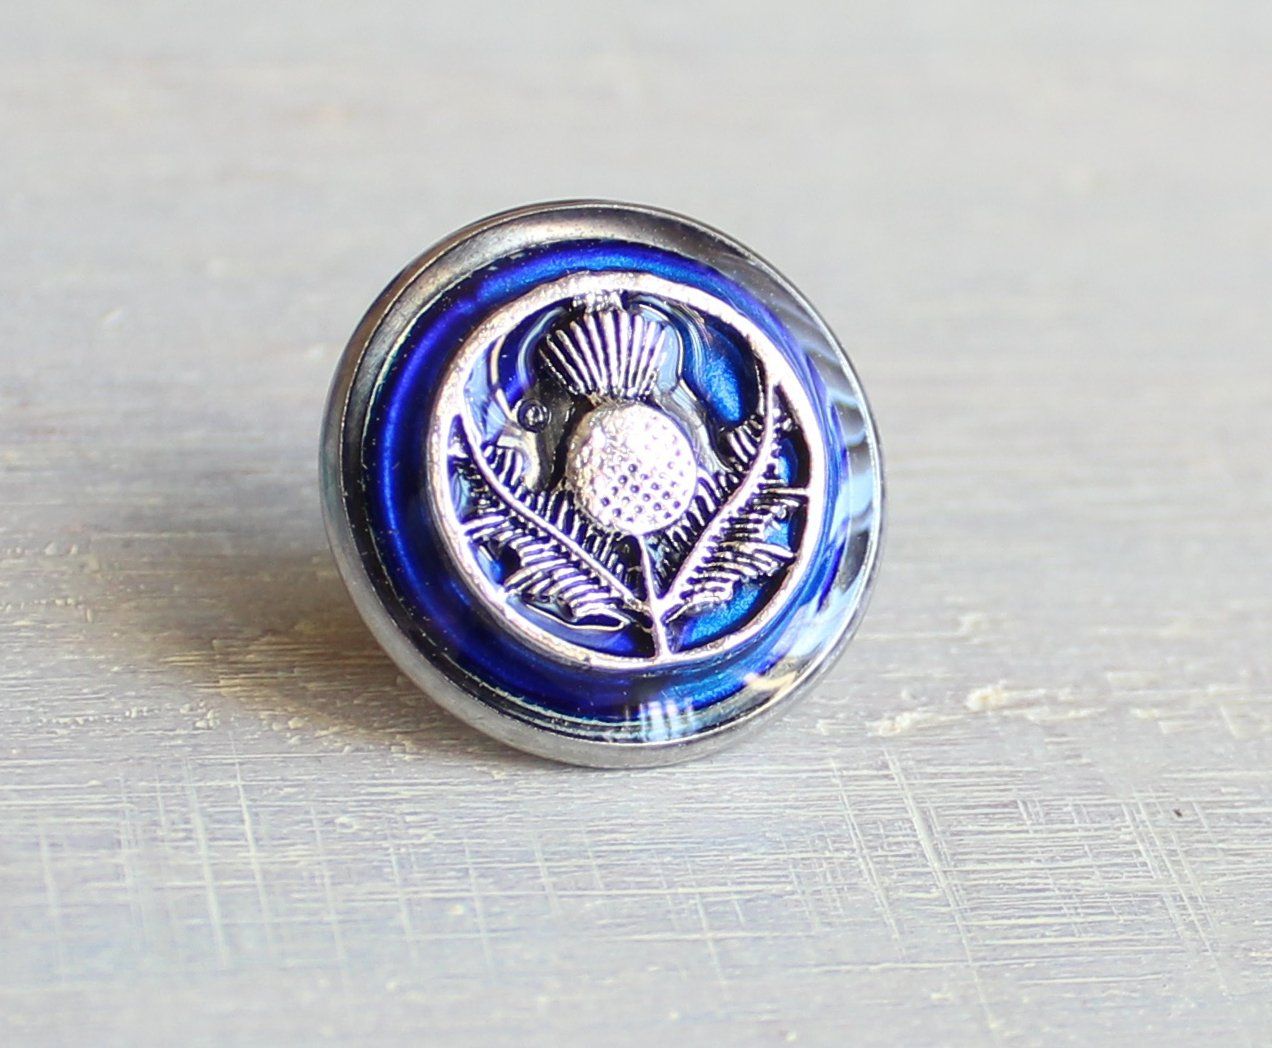 Royal blue Scottish thistle tie tack / lapel pin.